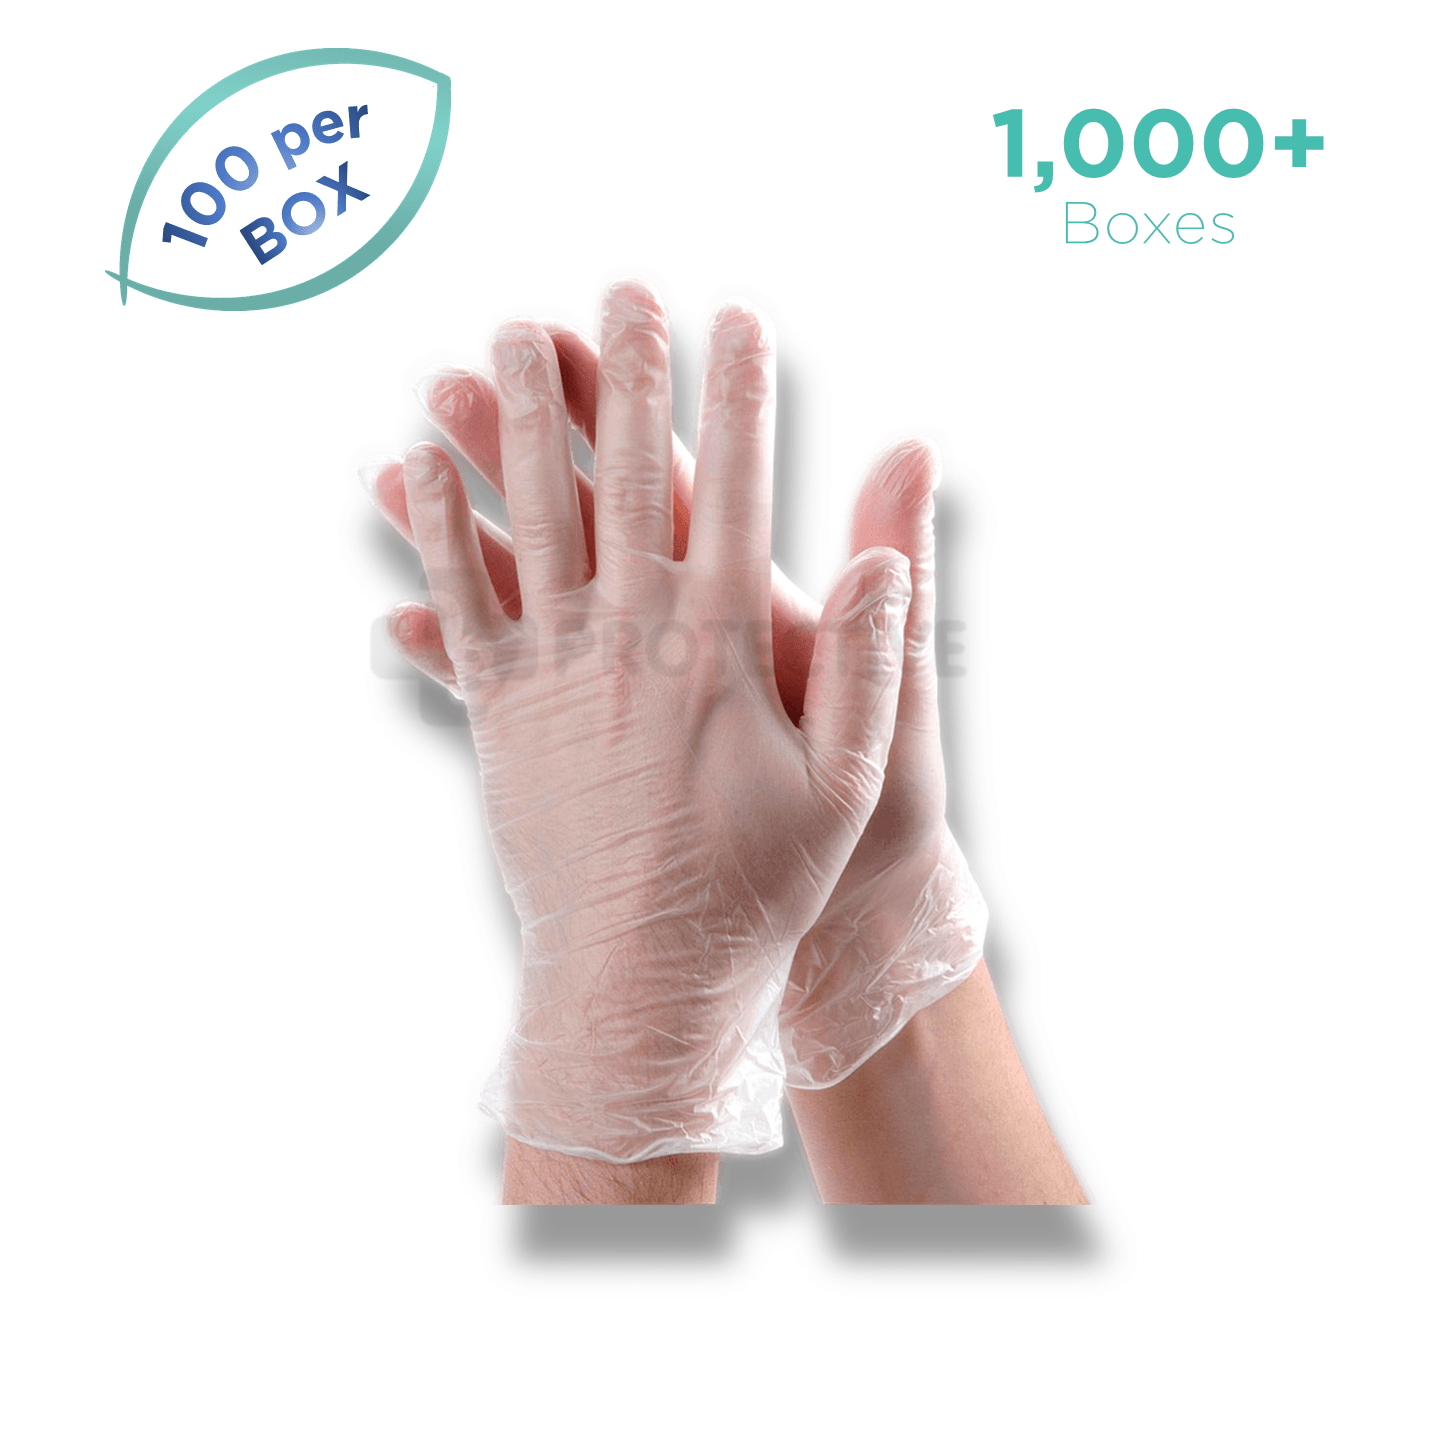 Copy of Vinyl Gloves - Pack of 100,000. - USA Medical Supply - DB Protective